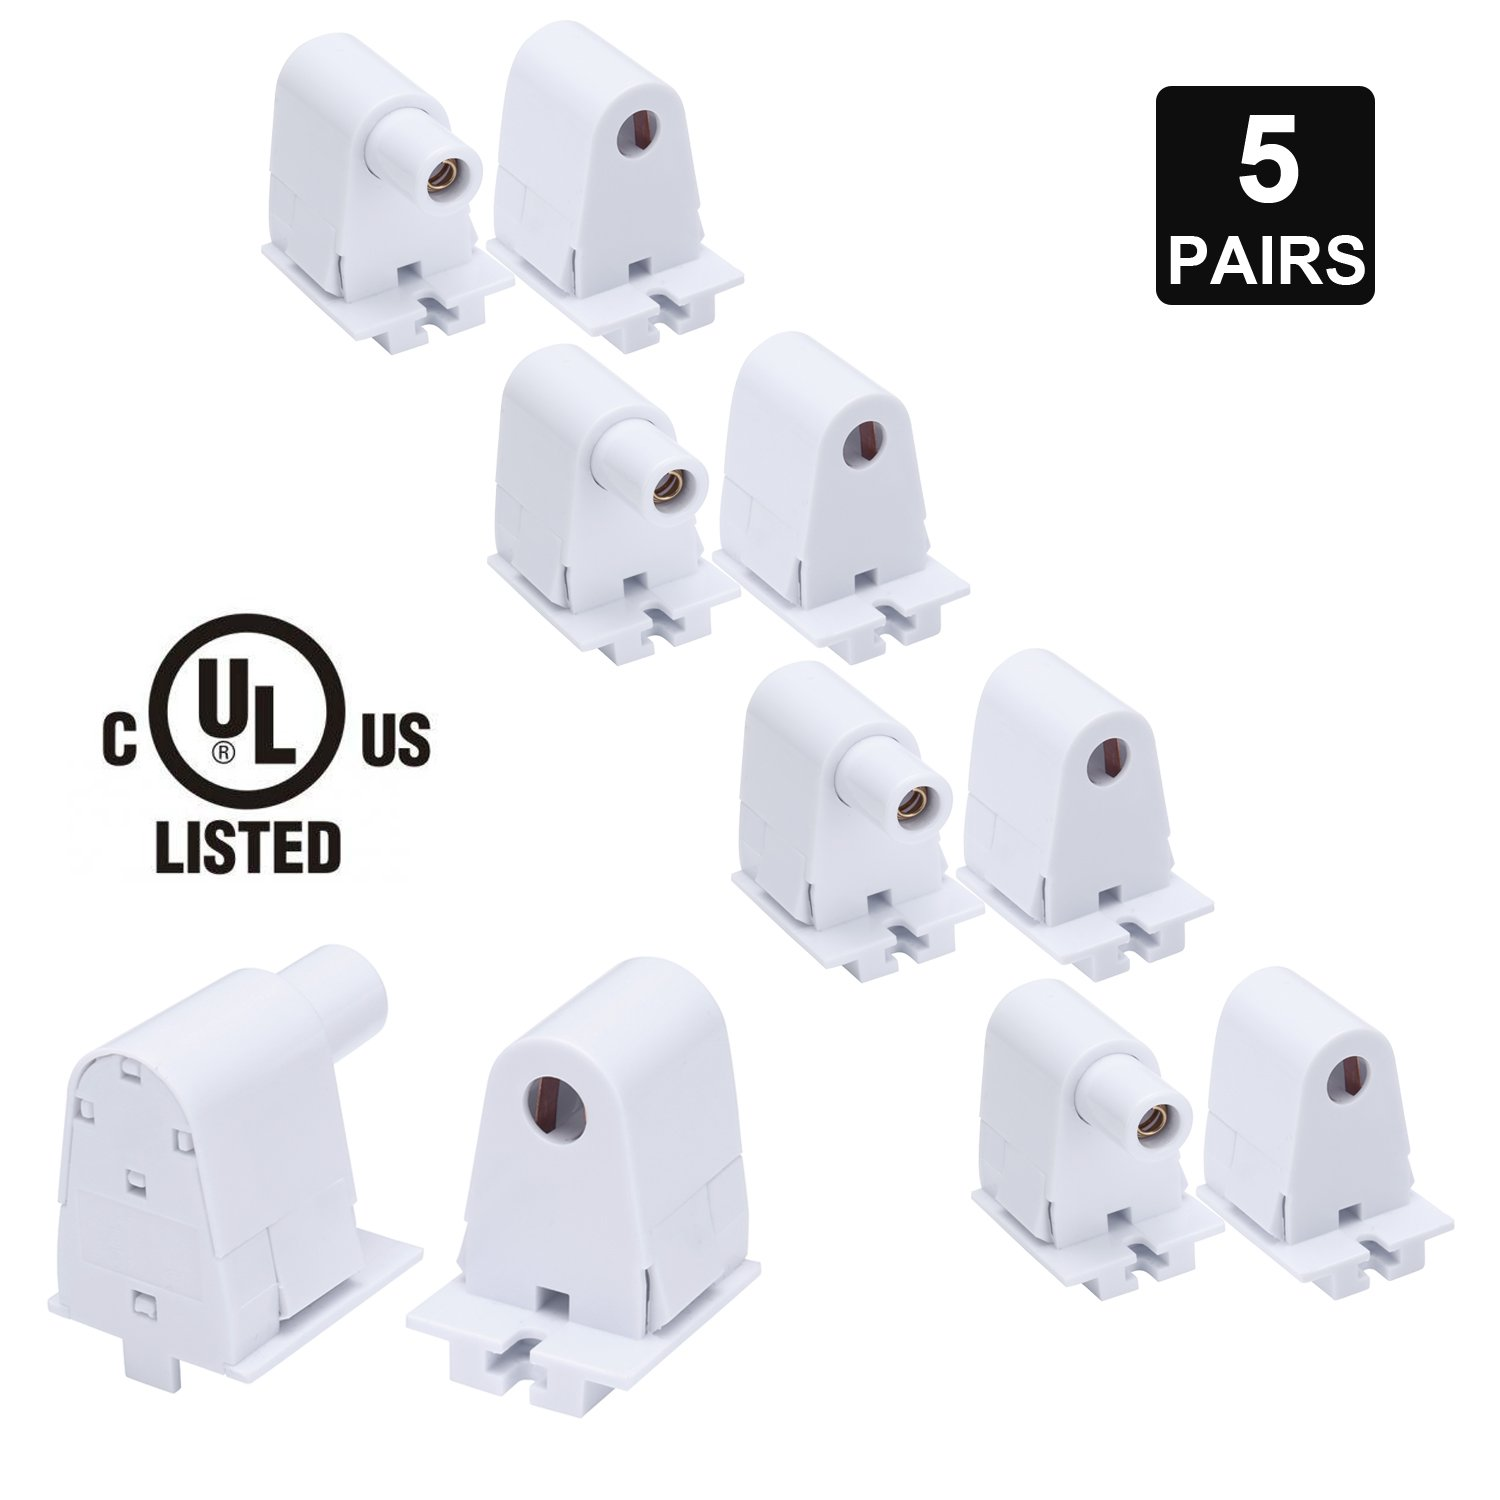 JOMITOP 5 Pairs Tombstone Base Holder Socket Connector with T8 Single Pin FA8 8ft LED Bulb Light Replacement Fluorescent Plunger by Jomitop